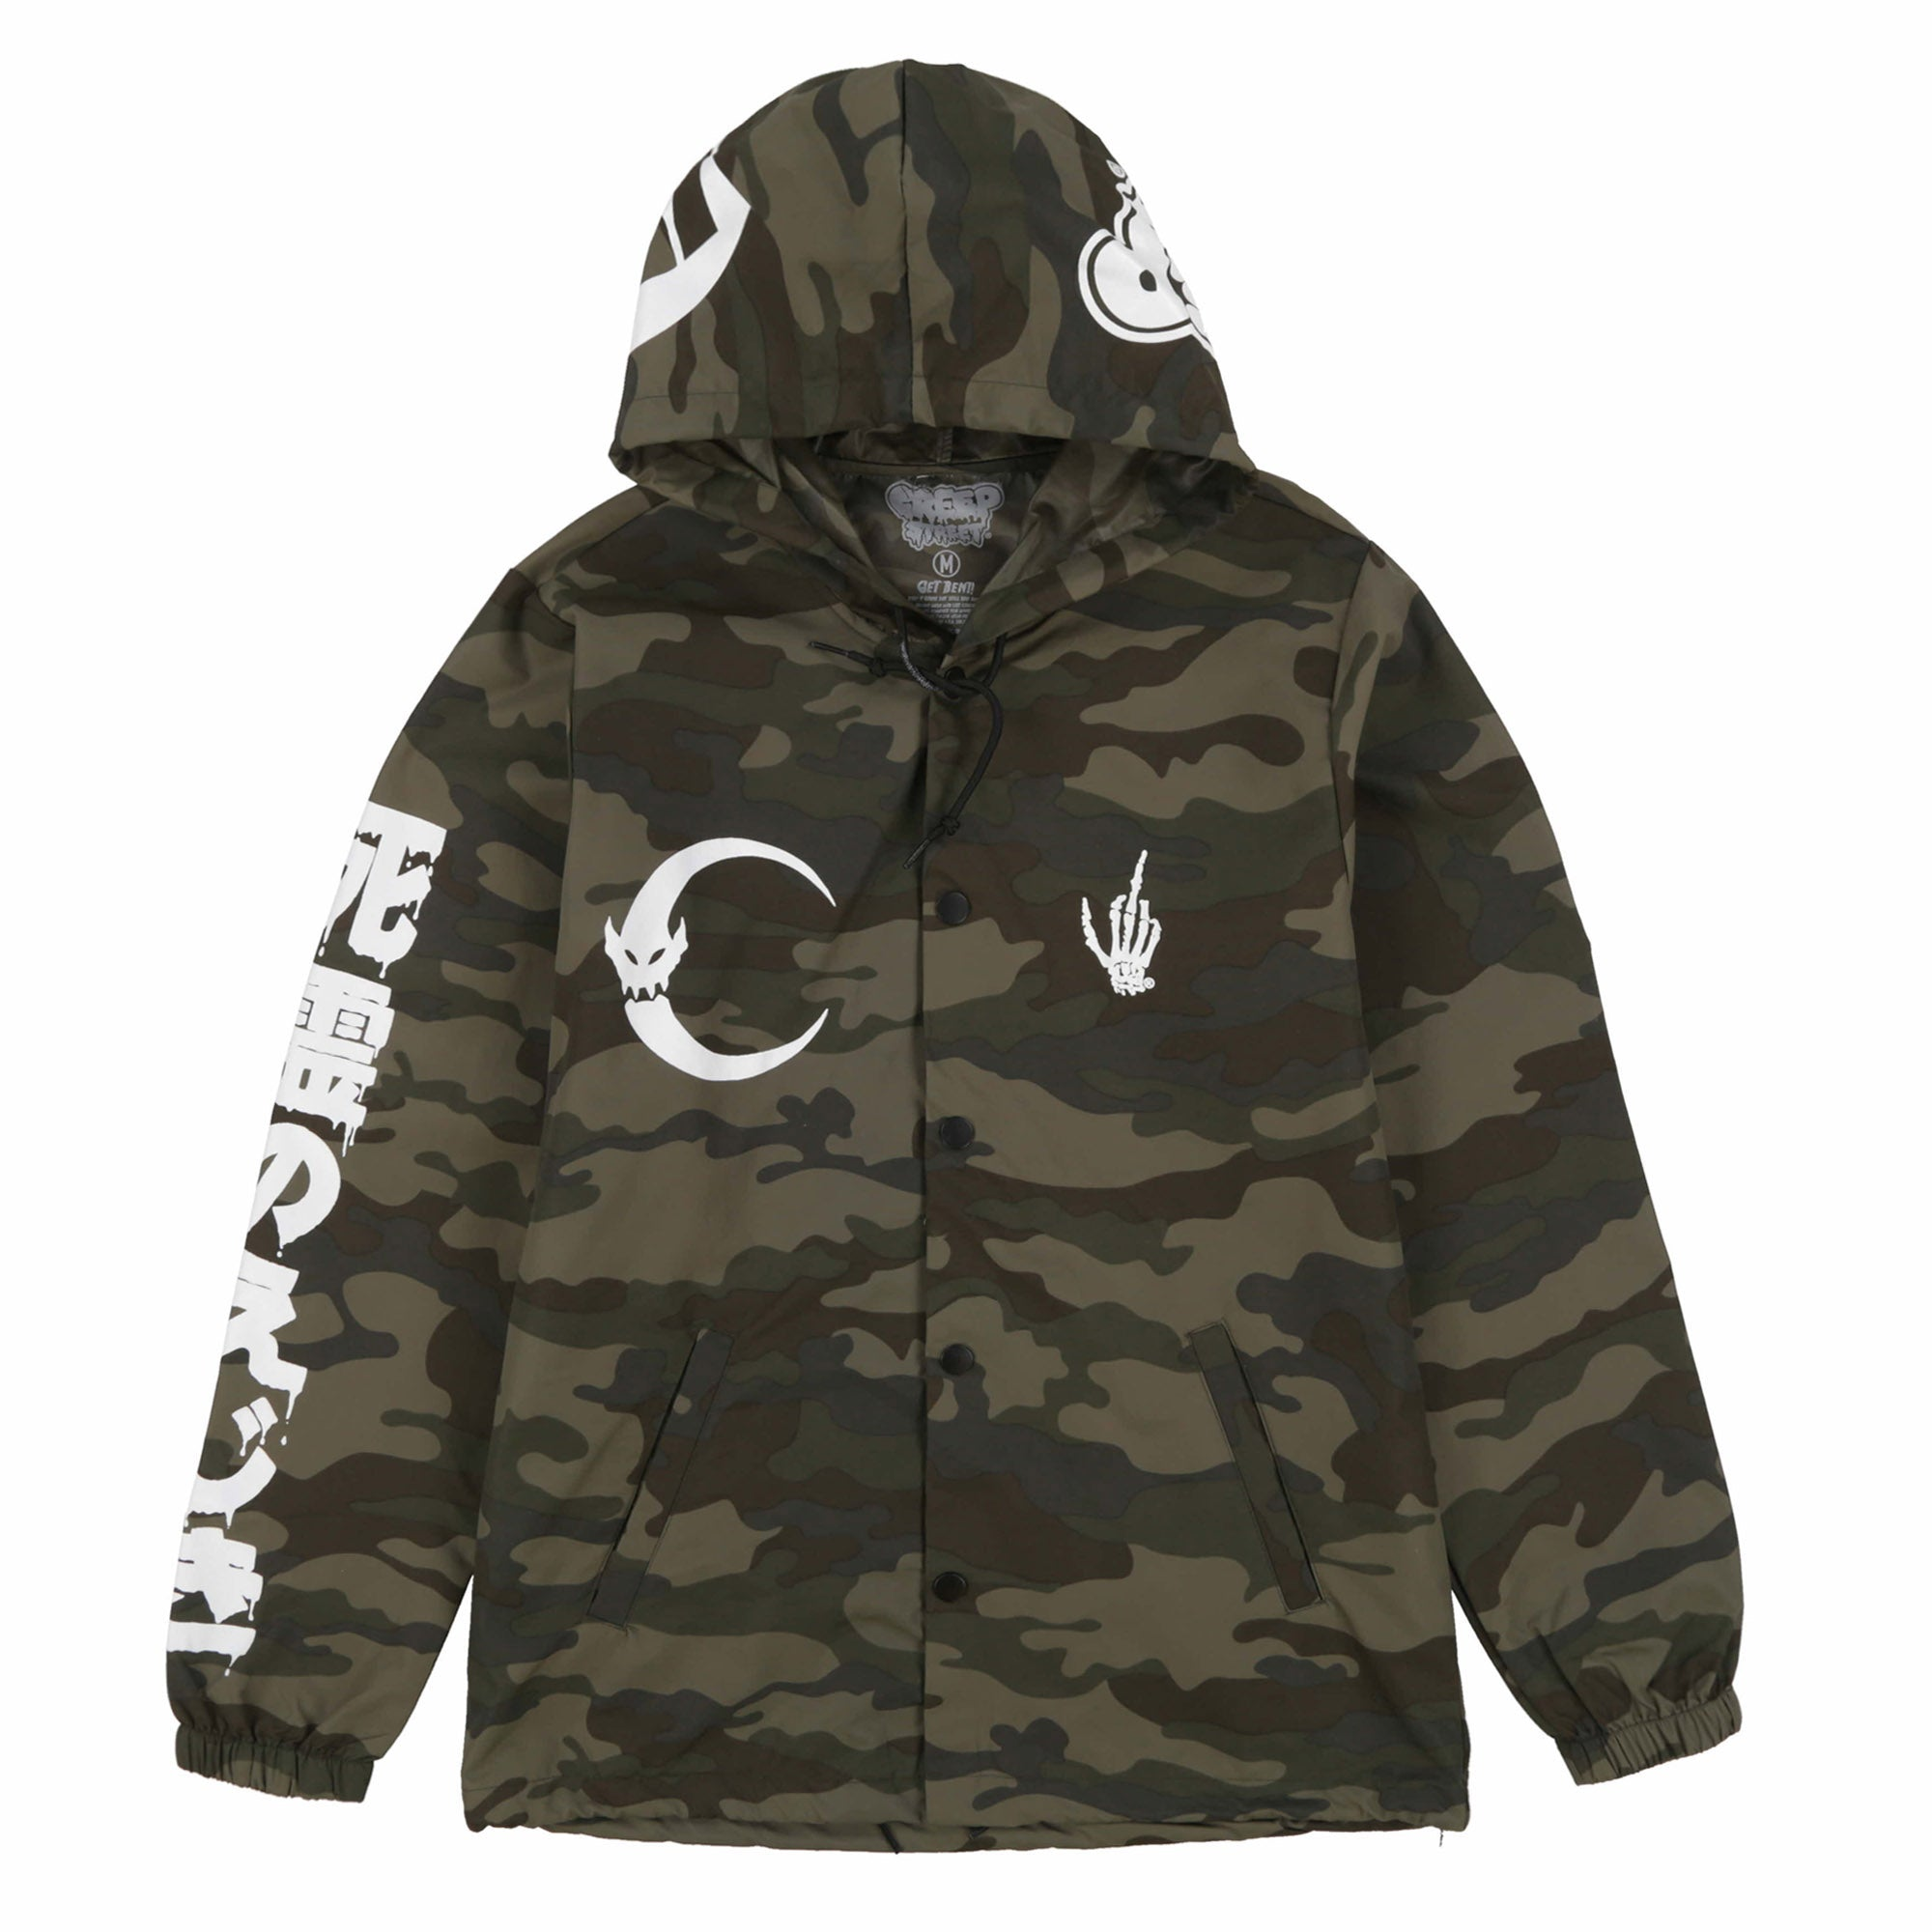 BURN IT DOWN HOODED COACHES JACKET